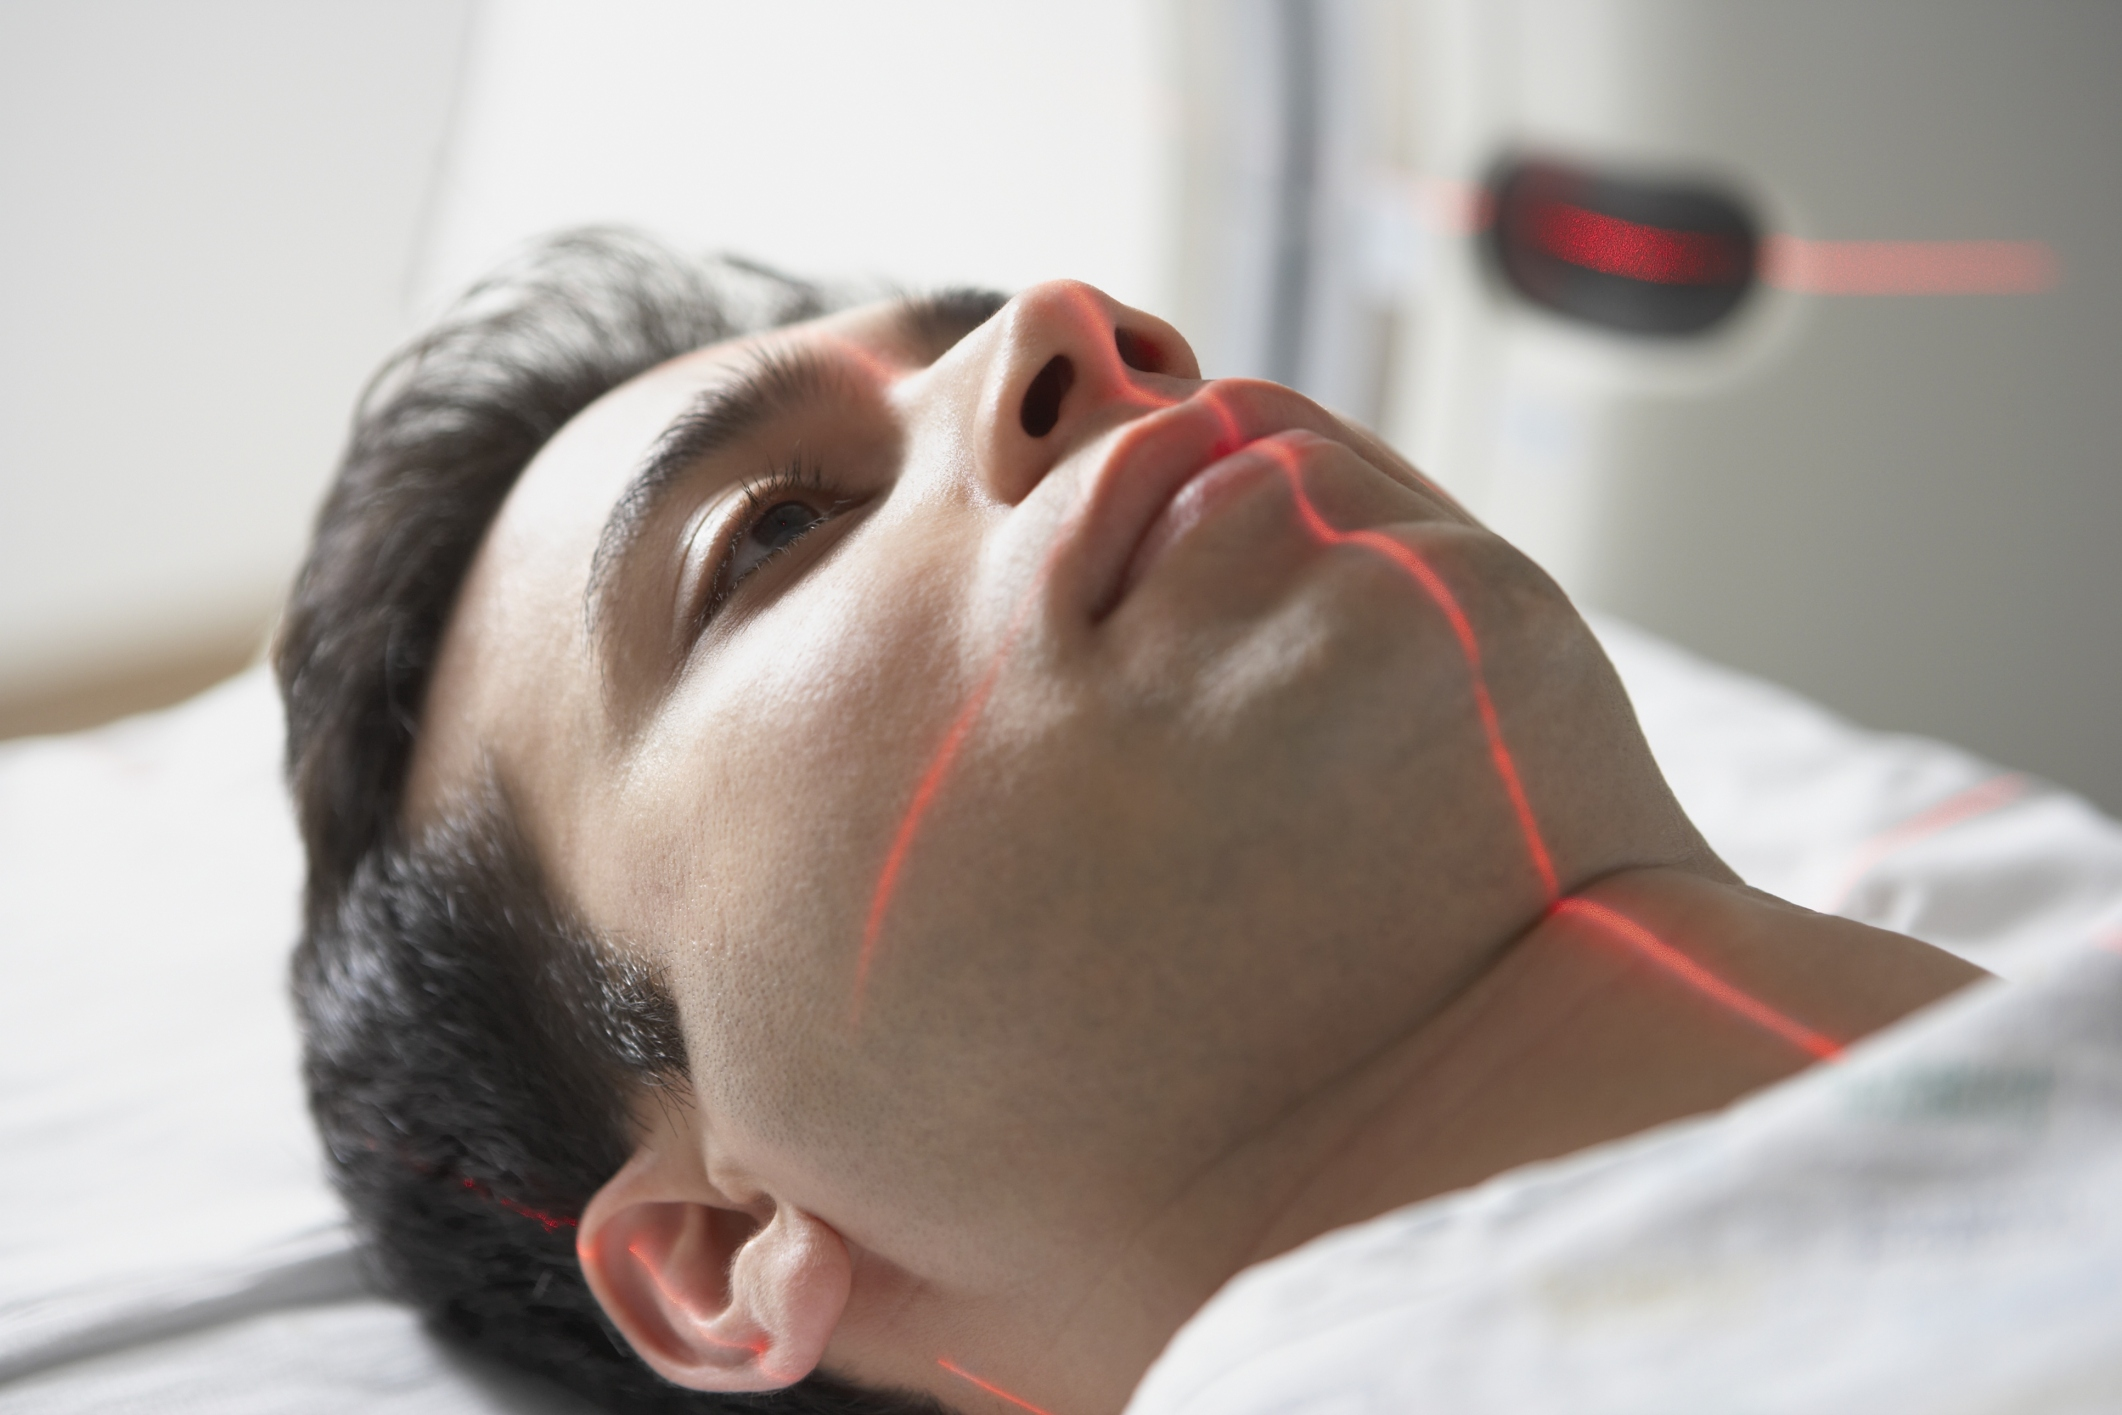 New technology to help detect depression before it starts